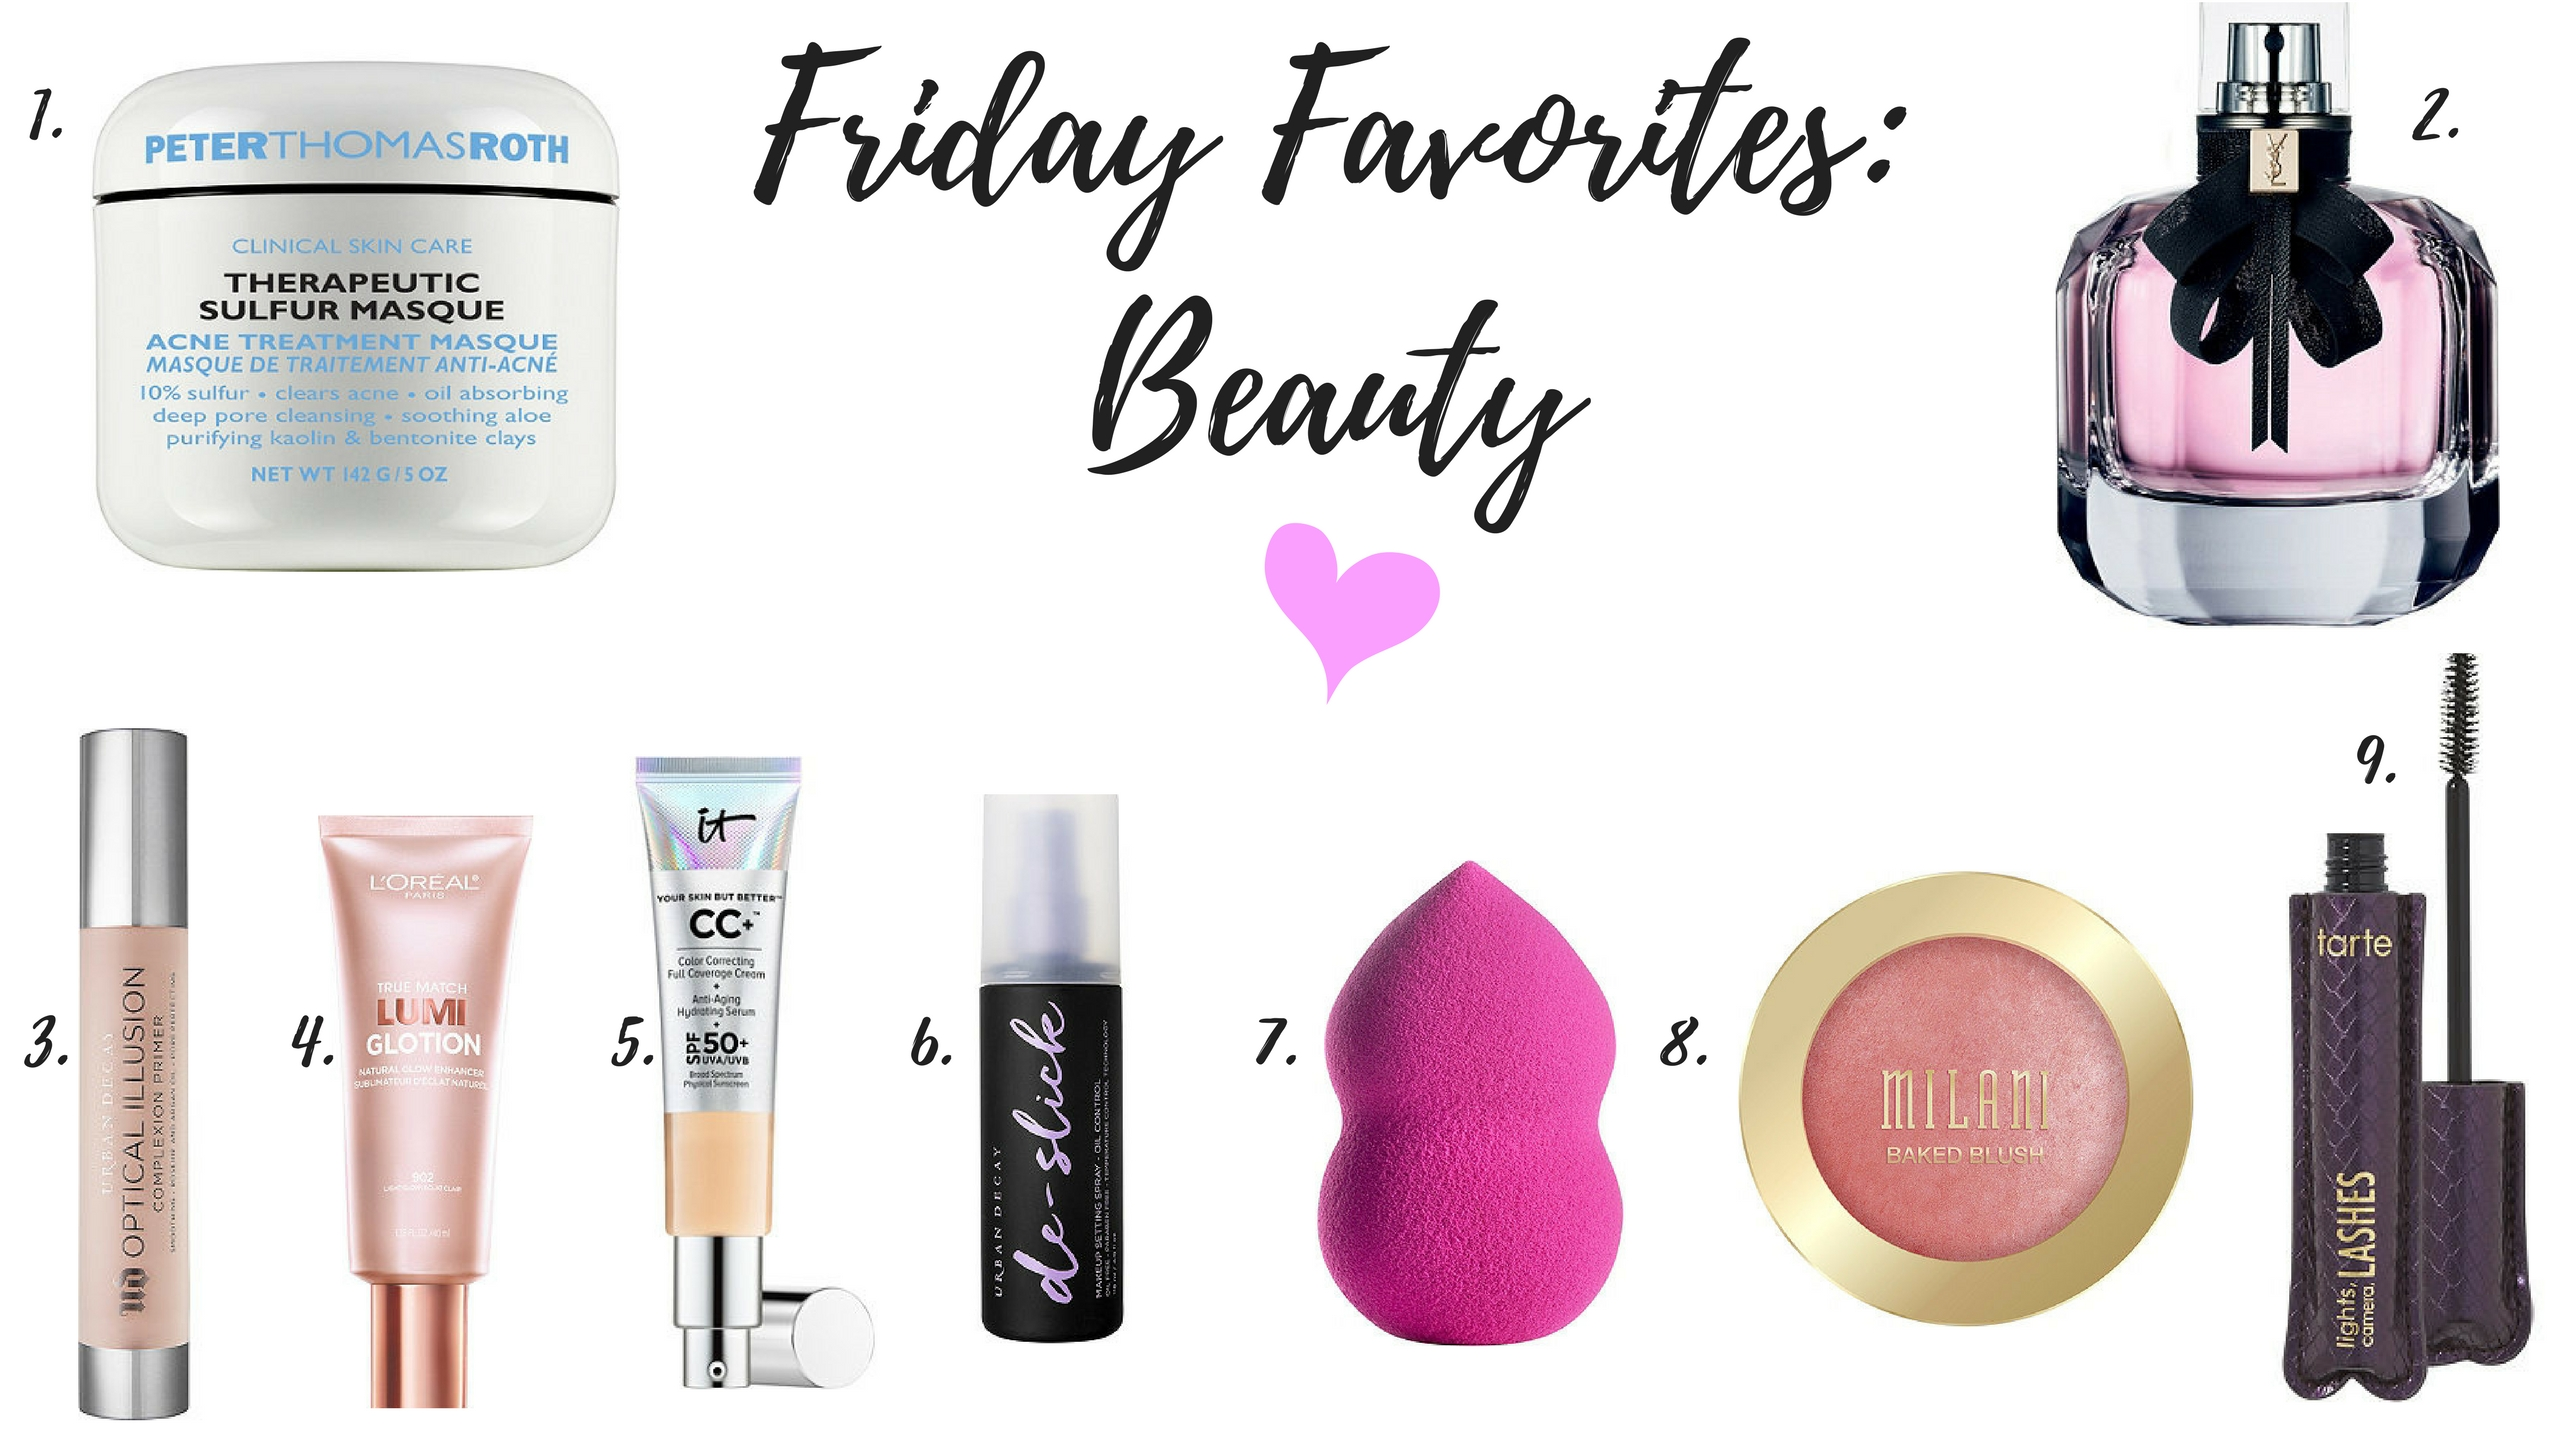 FRIDAY FAVORITES & HATE-ITS